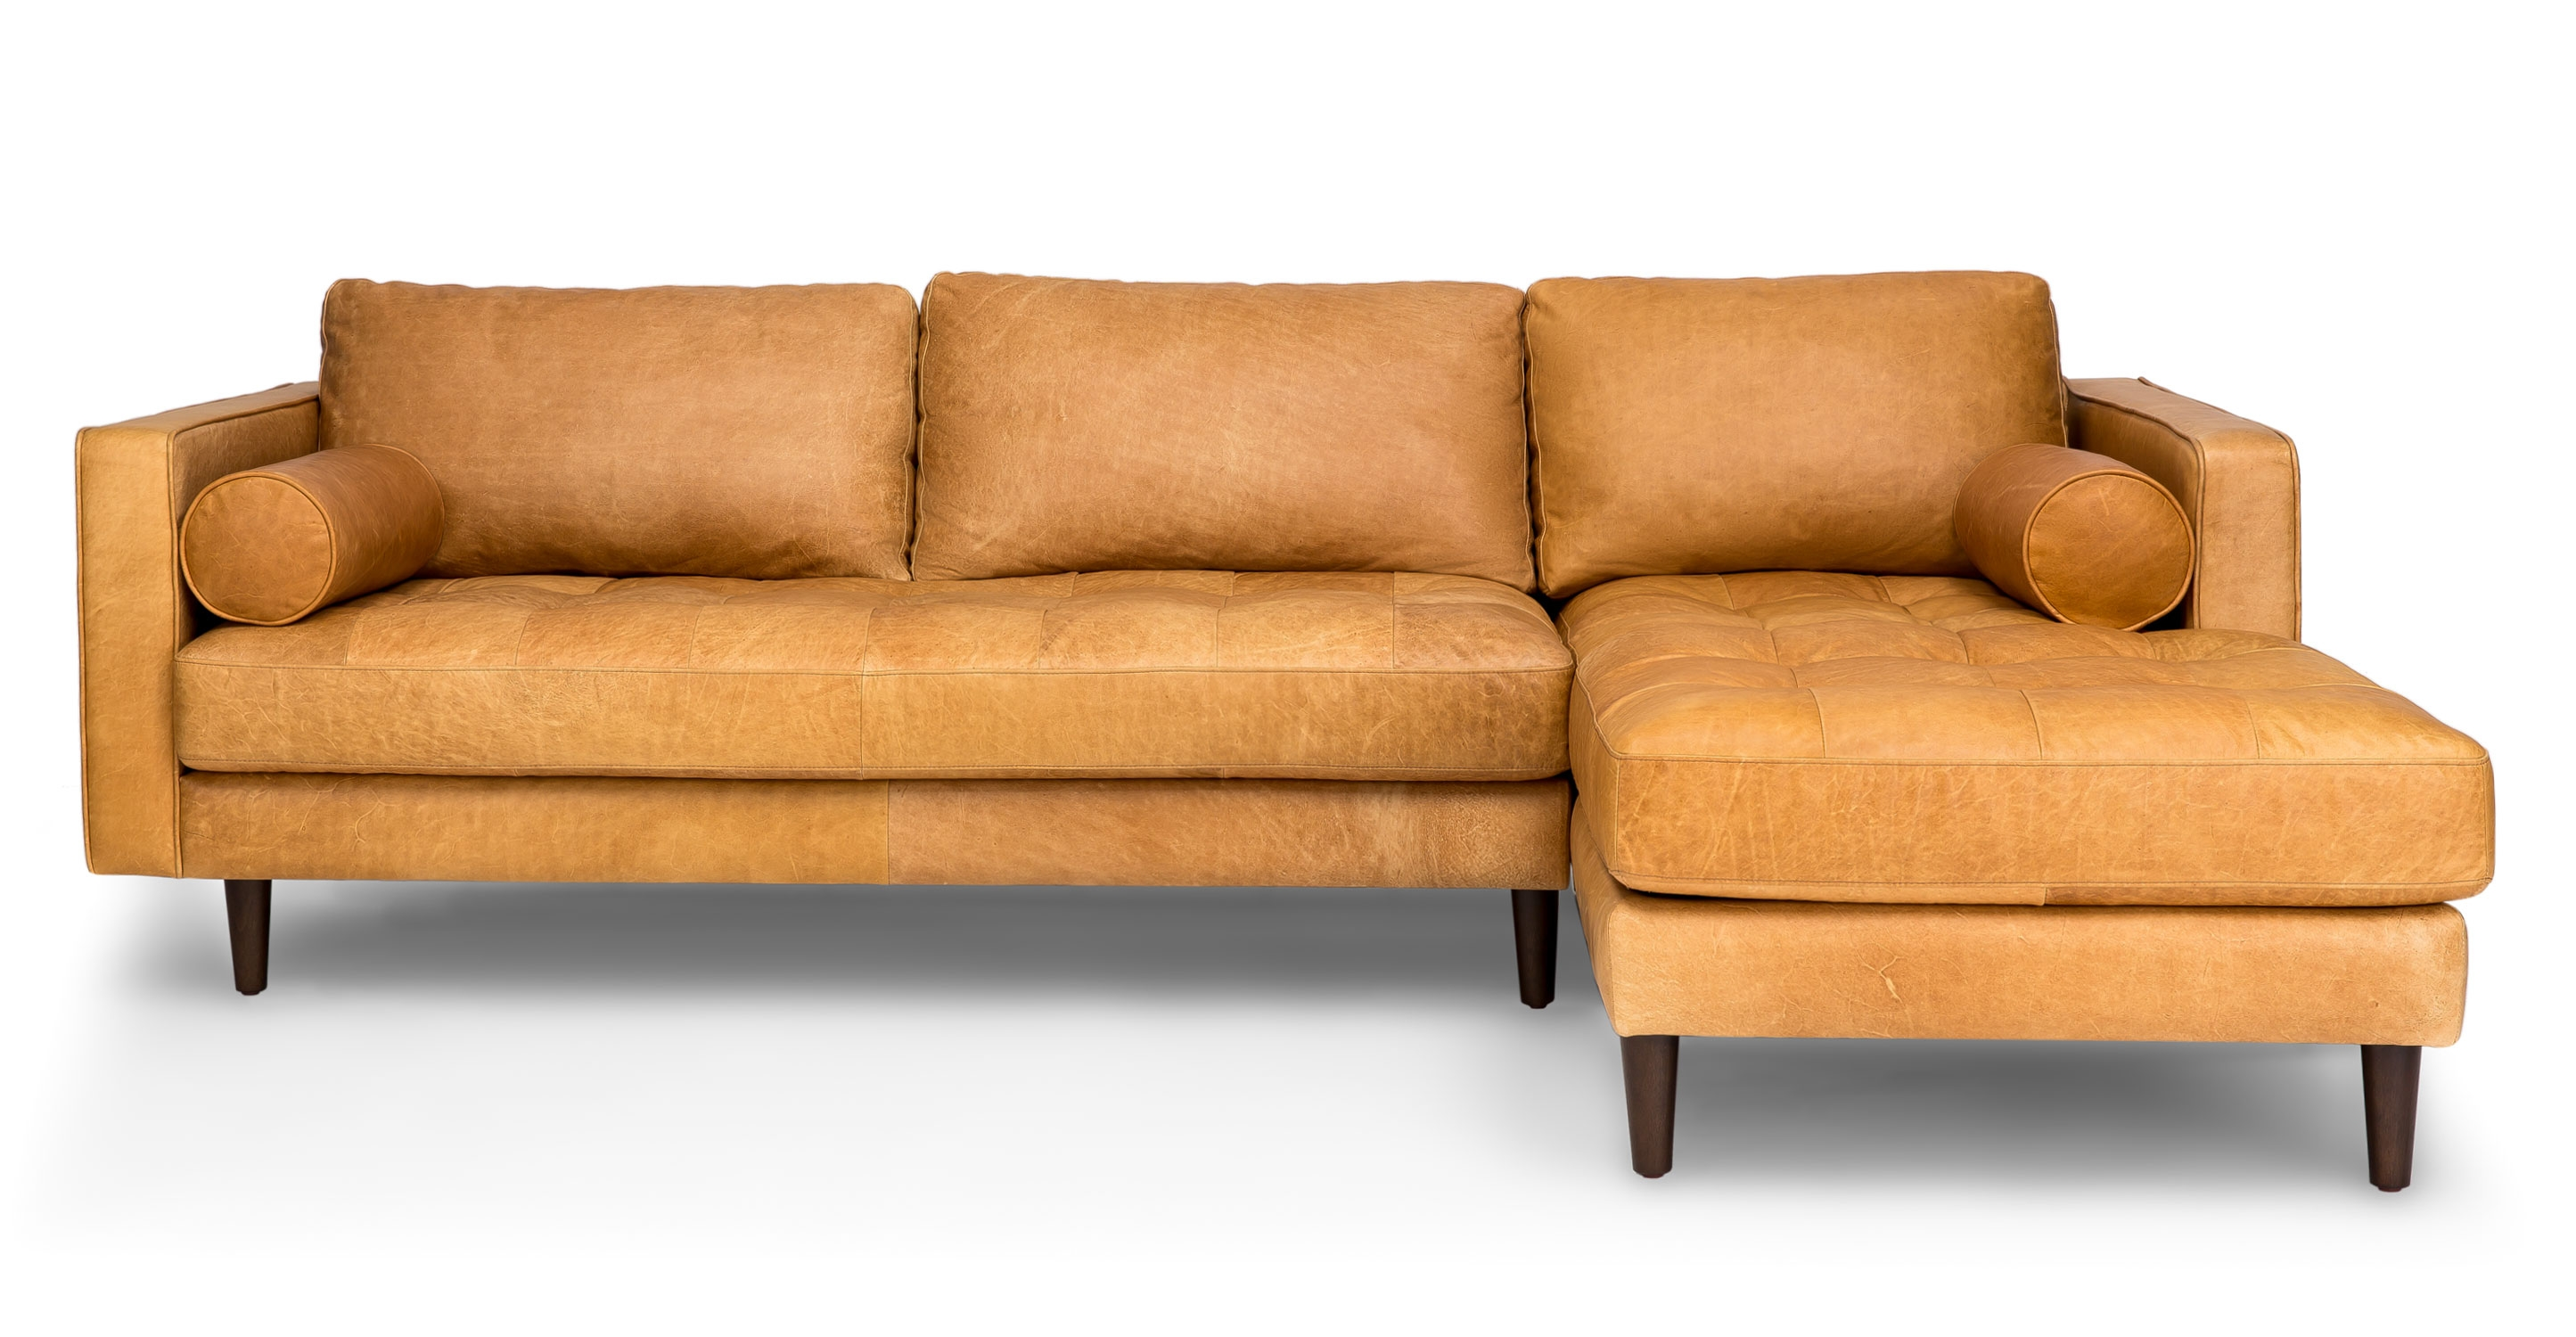 Sven Charme Tan Right Sectional Sofa Sectionals Article Regarding Camel Colored Sectional Sofa (Image 15 of 15)